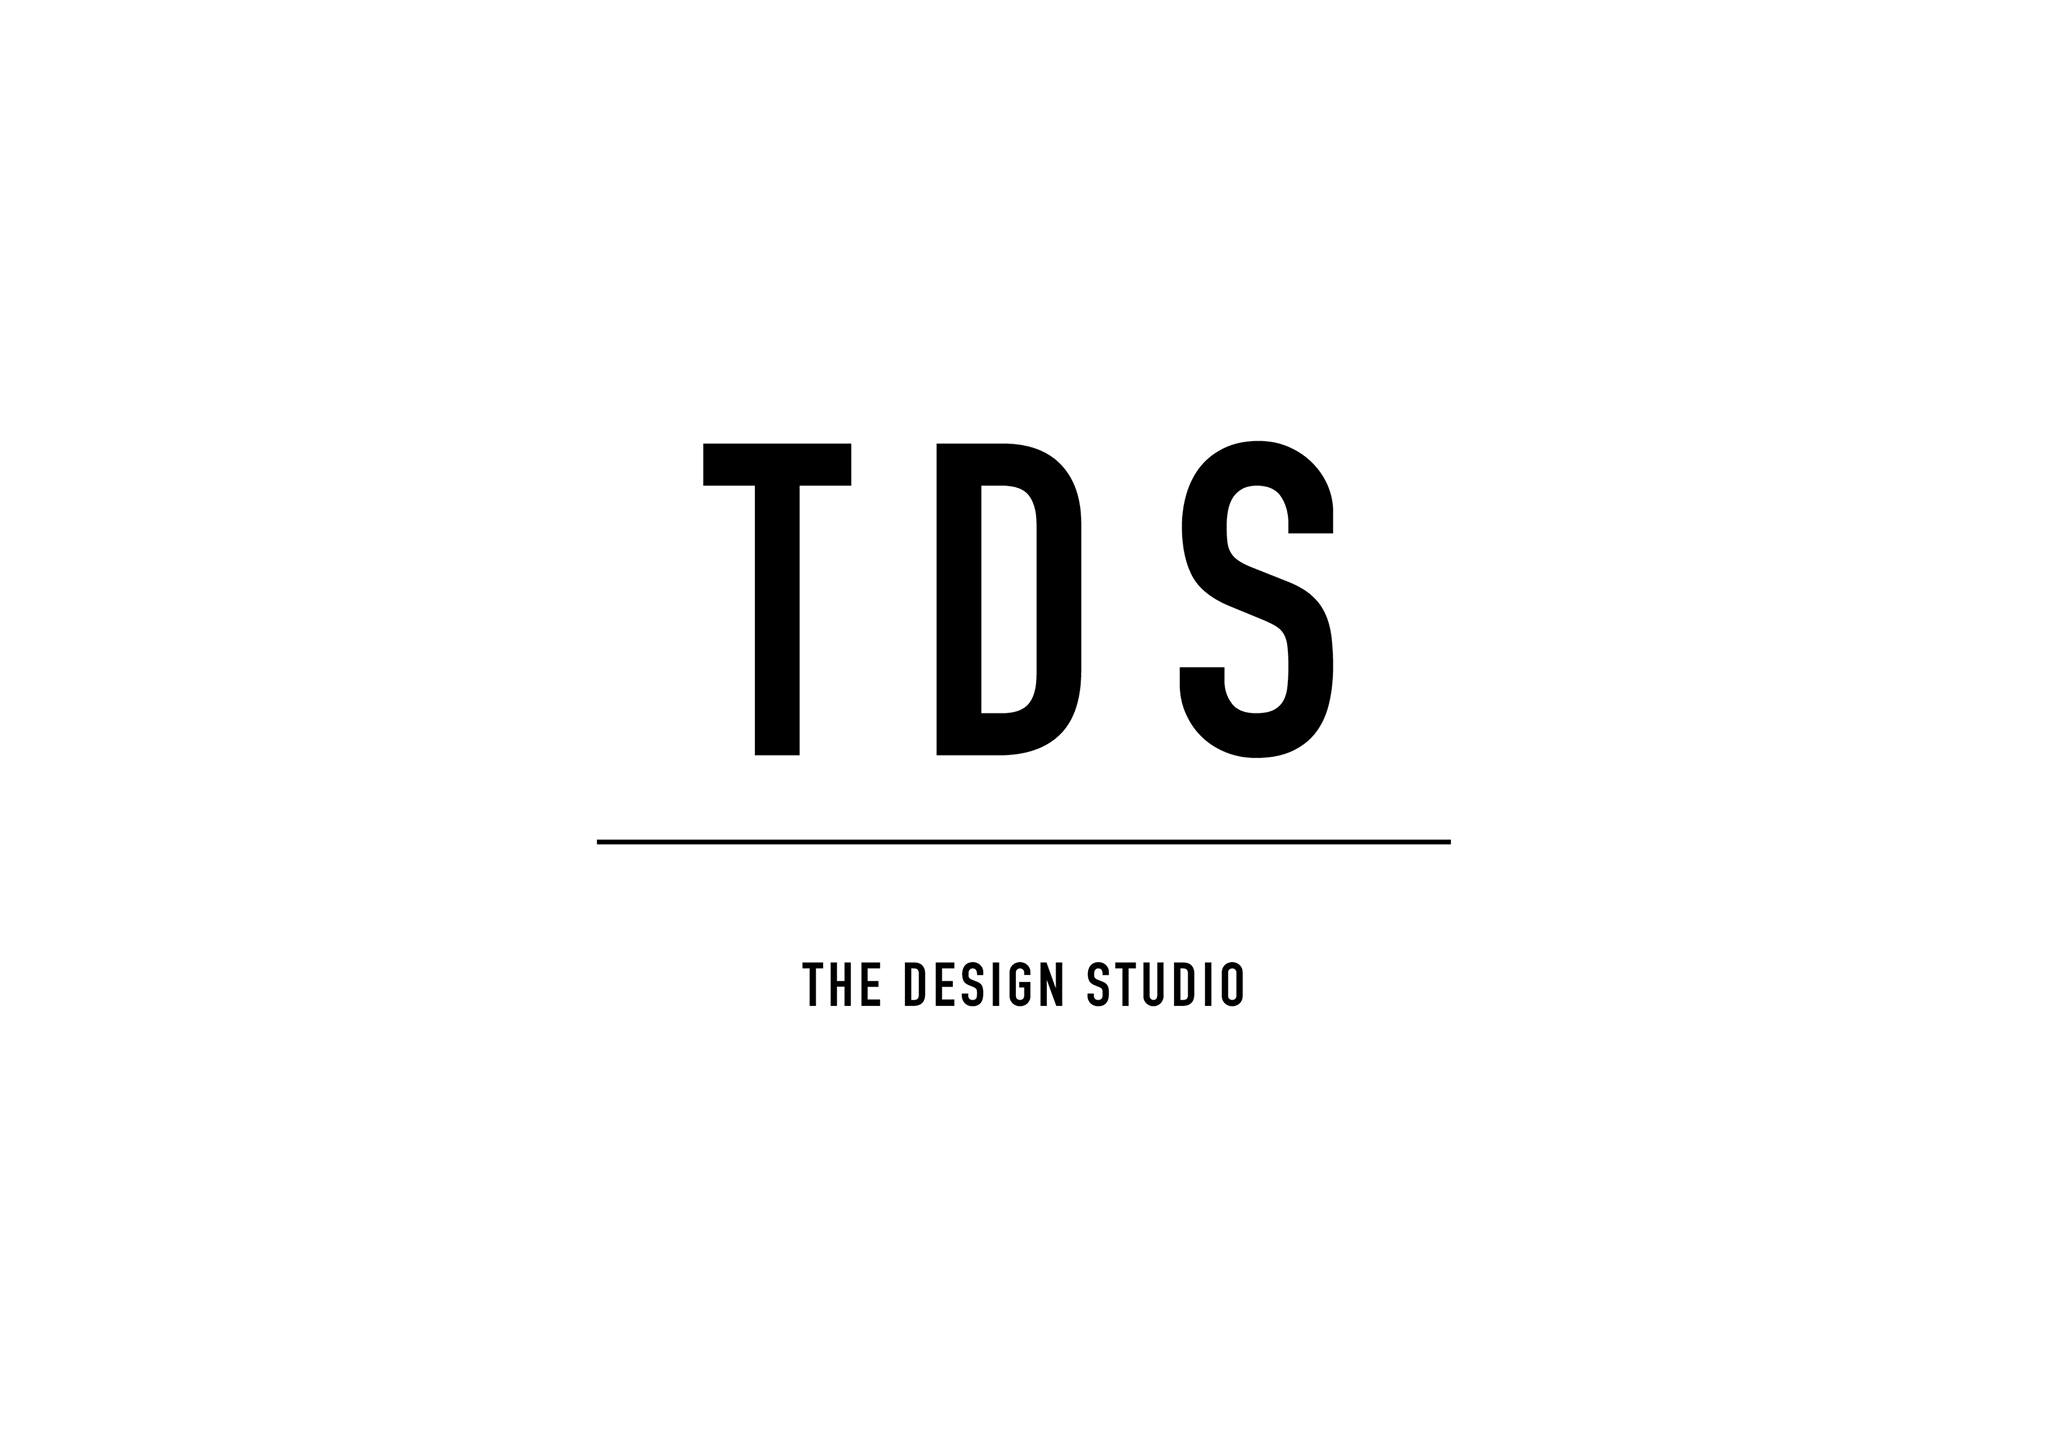 Isi Peters models for The Design Studio Logo